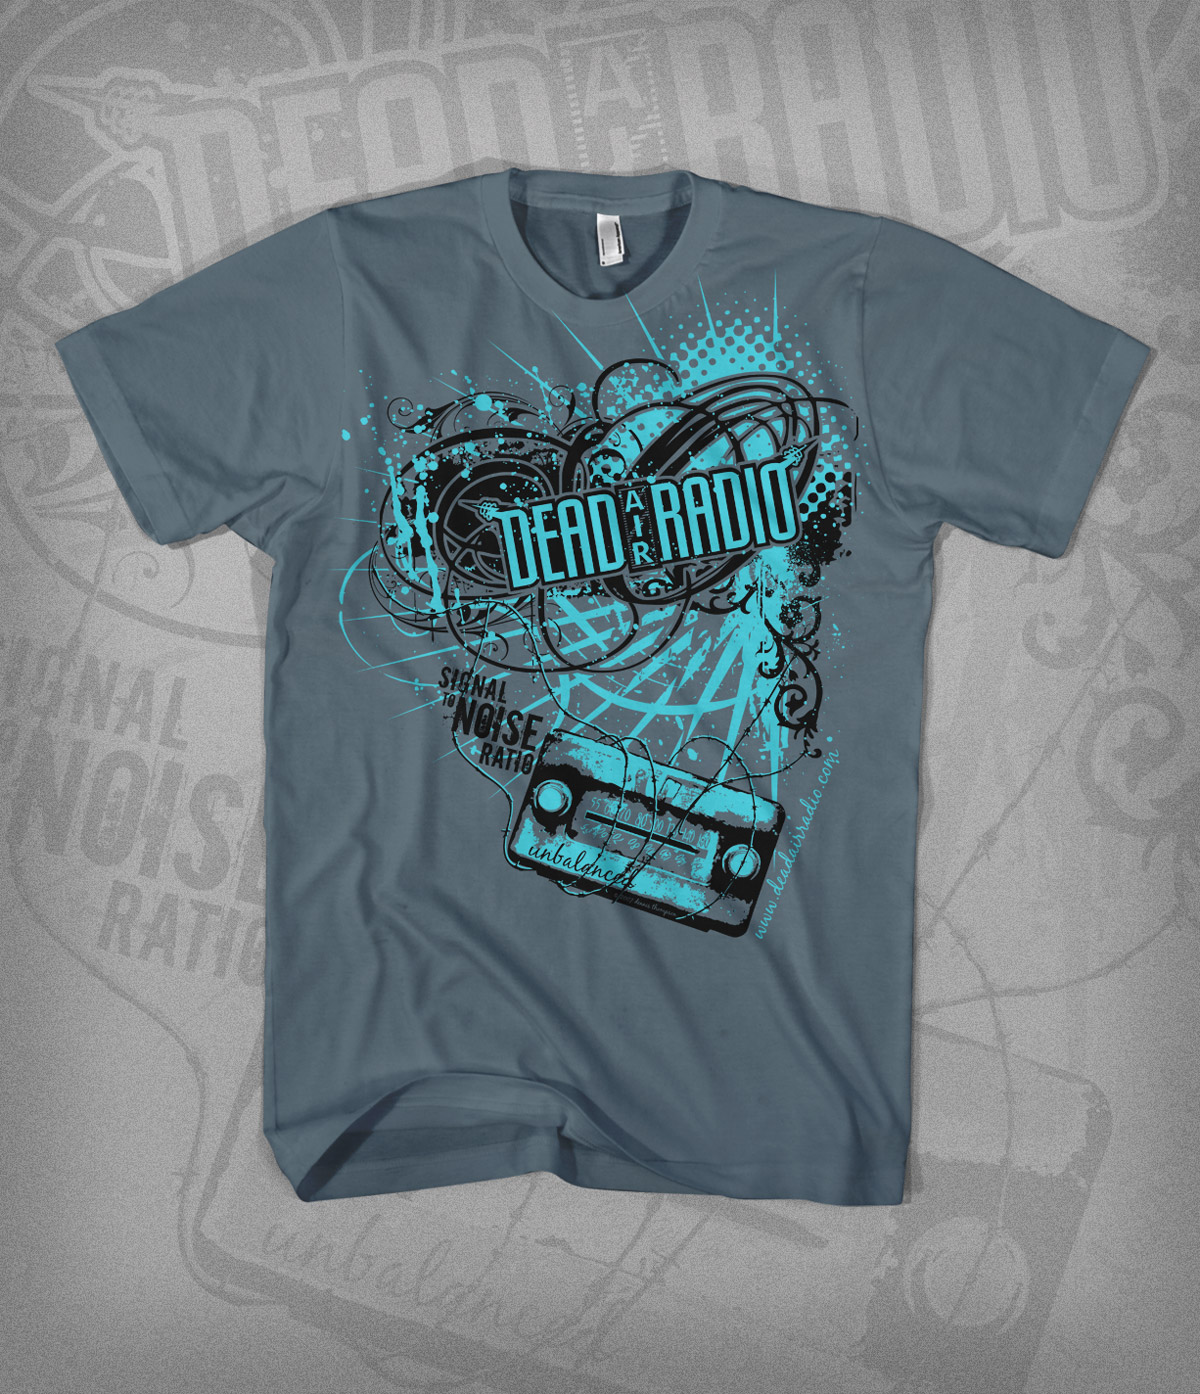 STNR tshirt design - gray